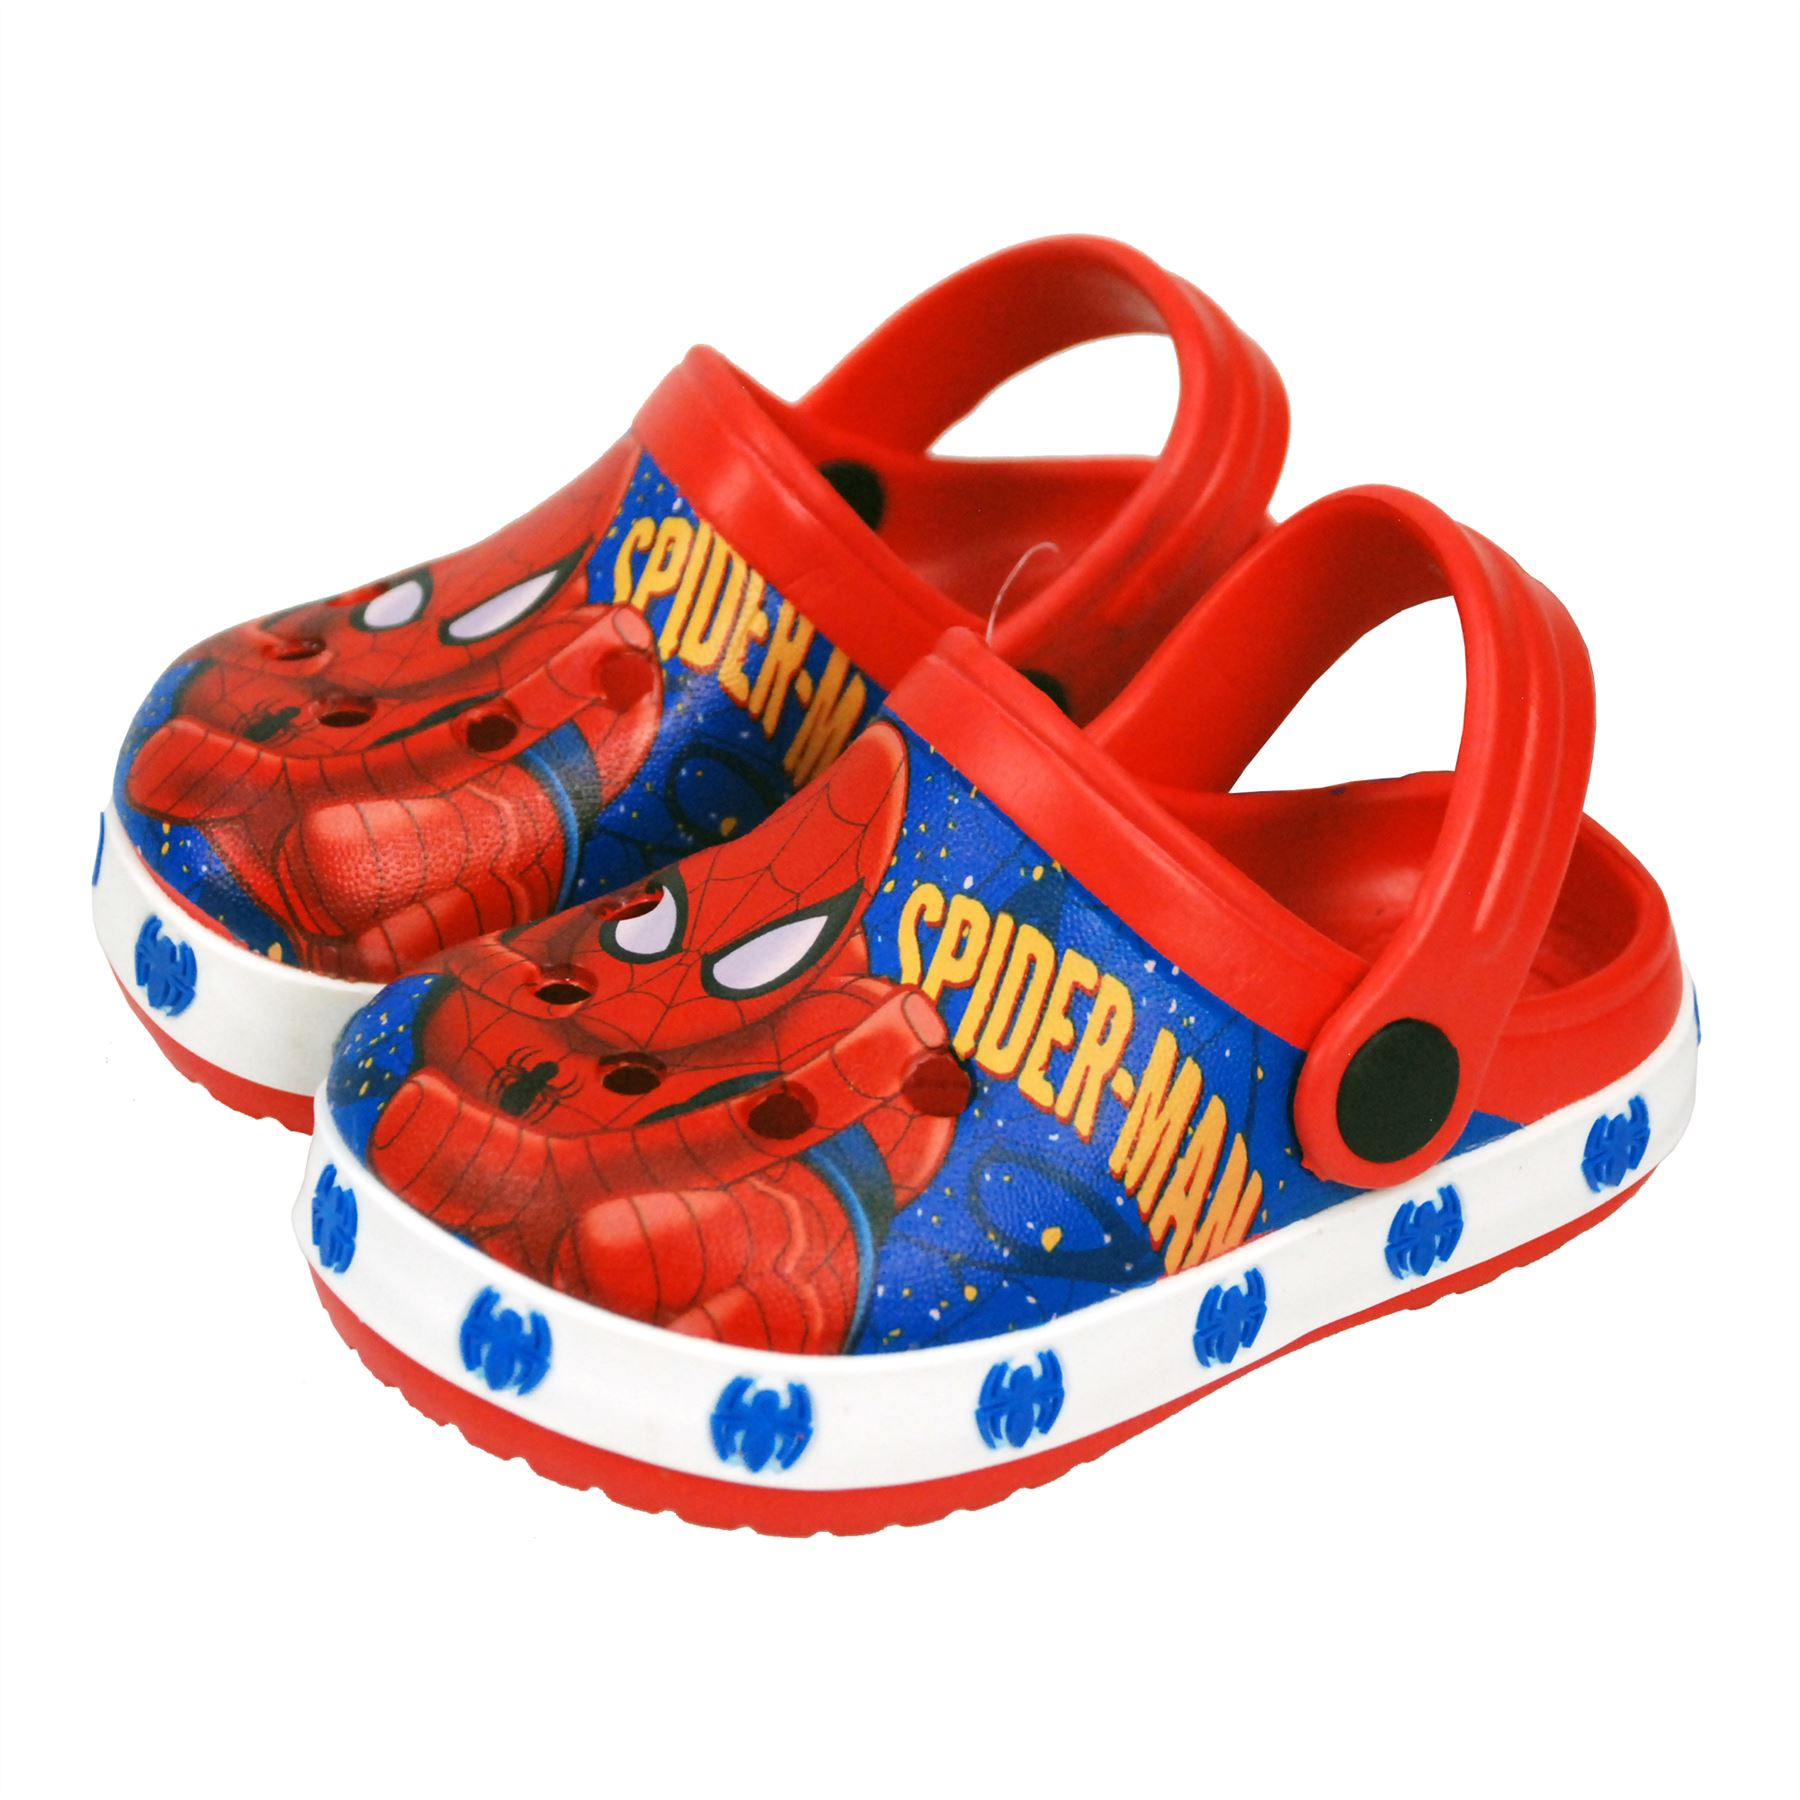 Details about Marvel® Spider Man Kids Boys Sandals Beach Slippers Shoes UK Sizes 5 to 1